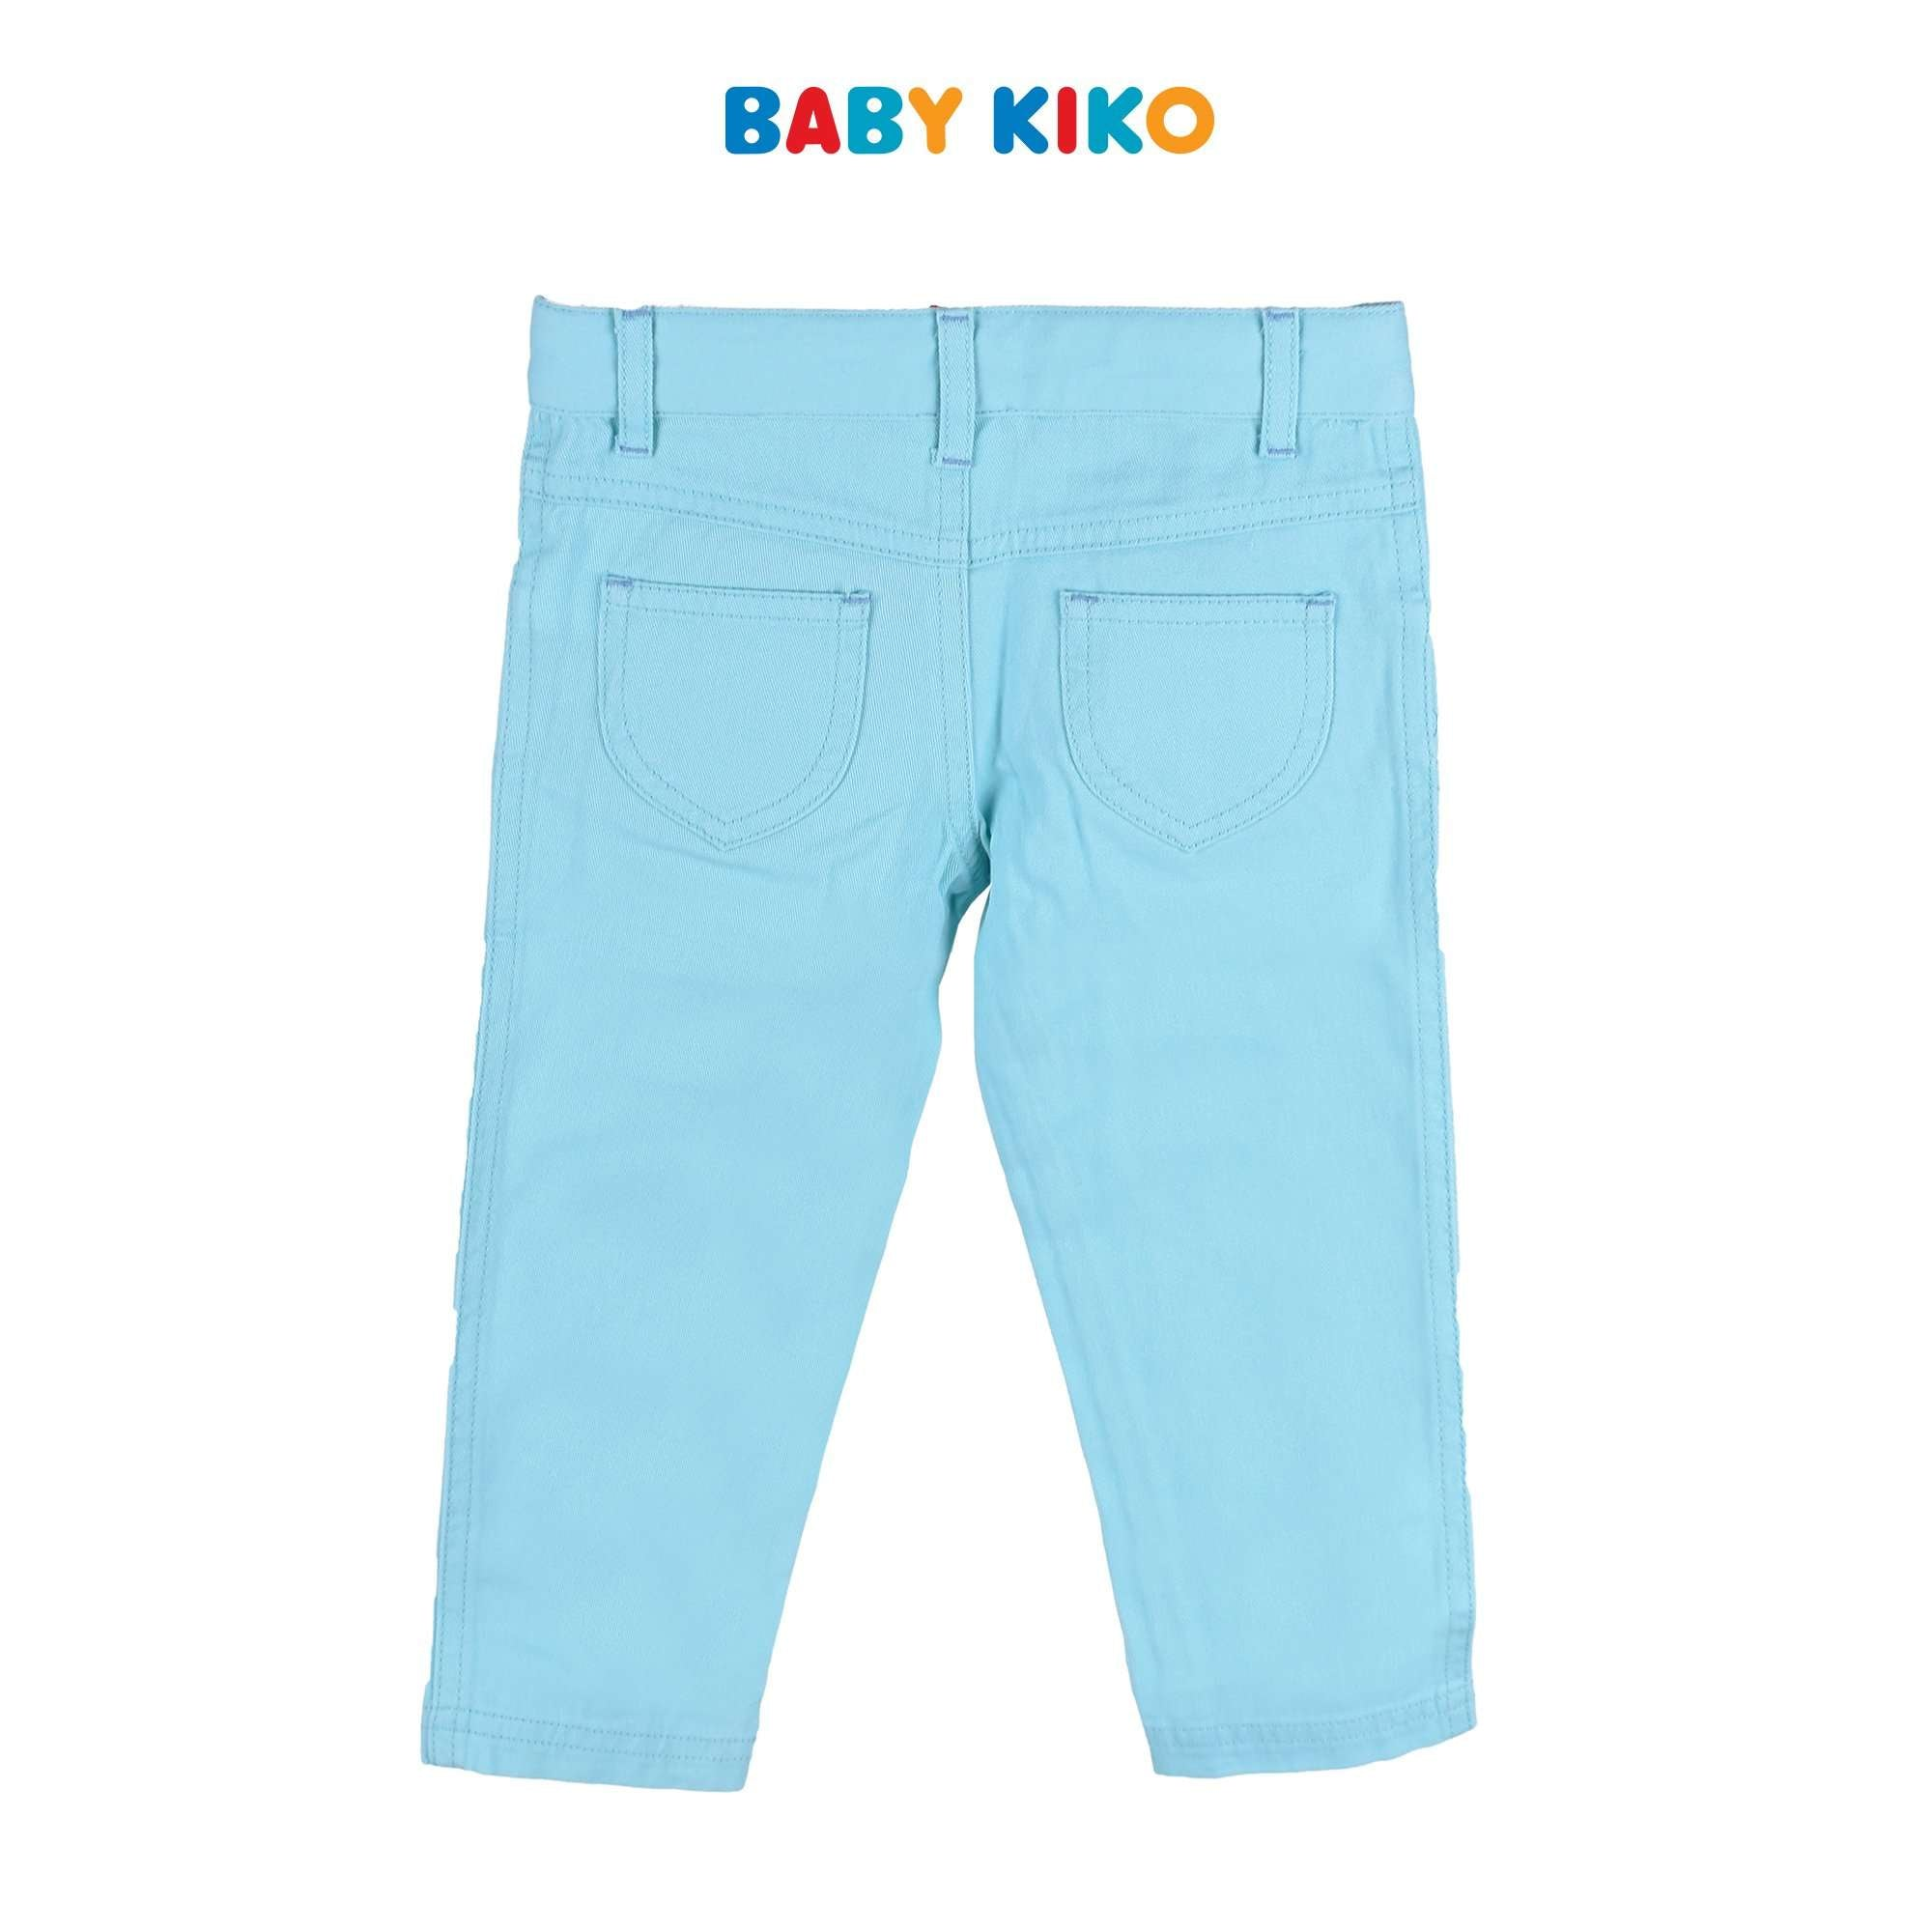 Baby KIKO Toddler Girl Long Pants Turquoise Woven 335095-252 : Buy Baby KIKO online at CMG.MY